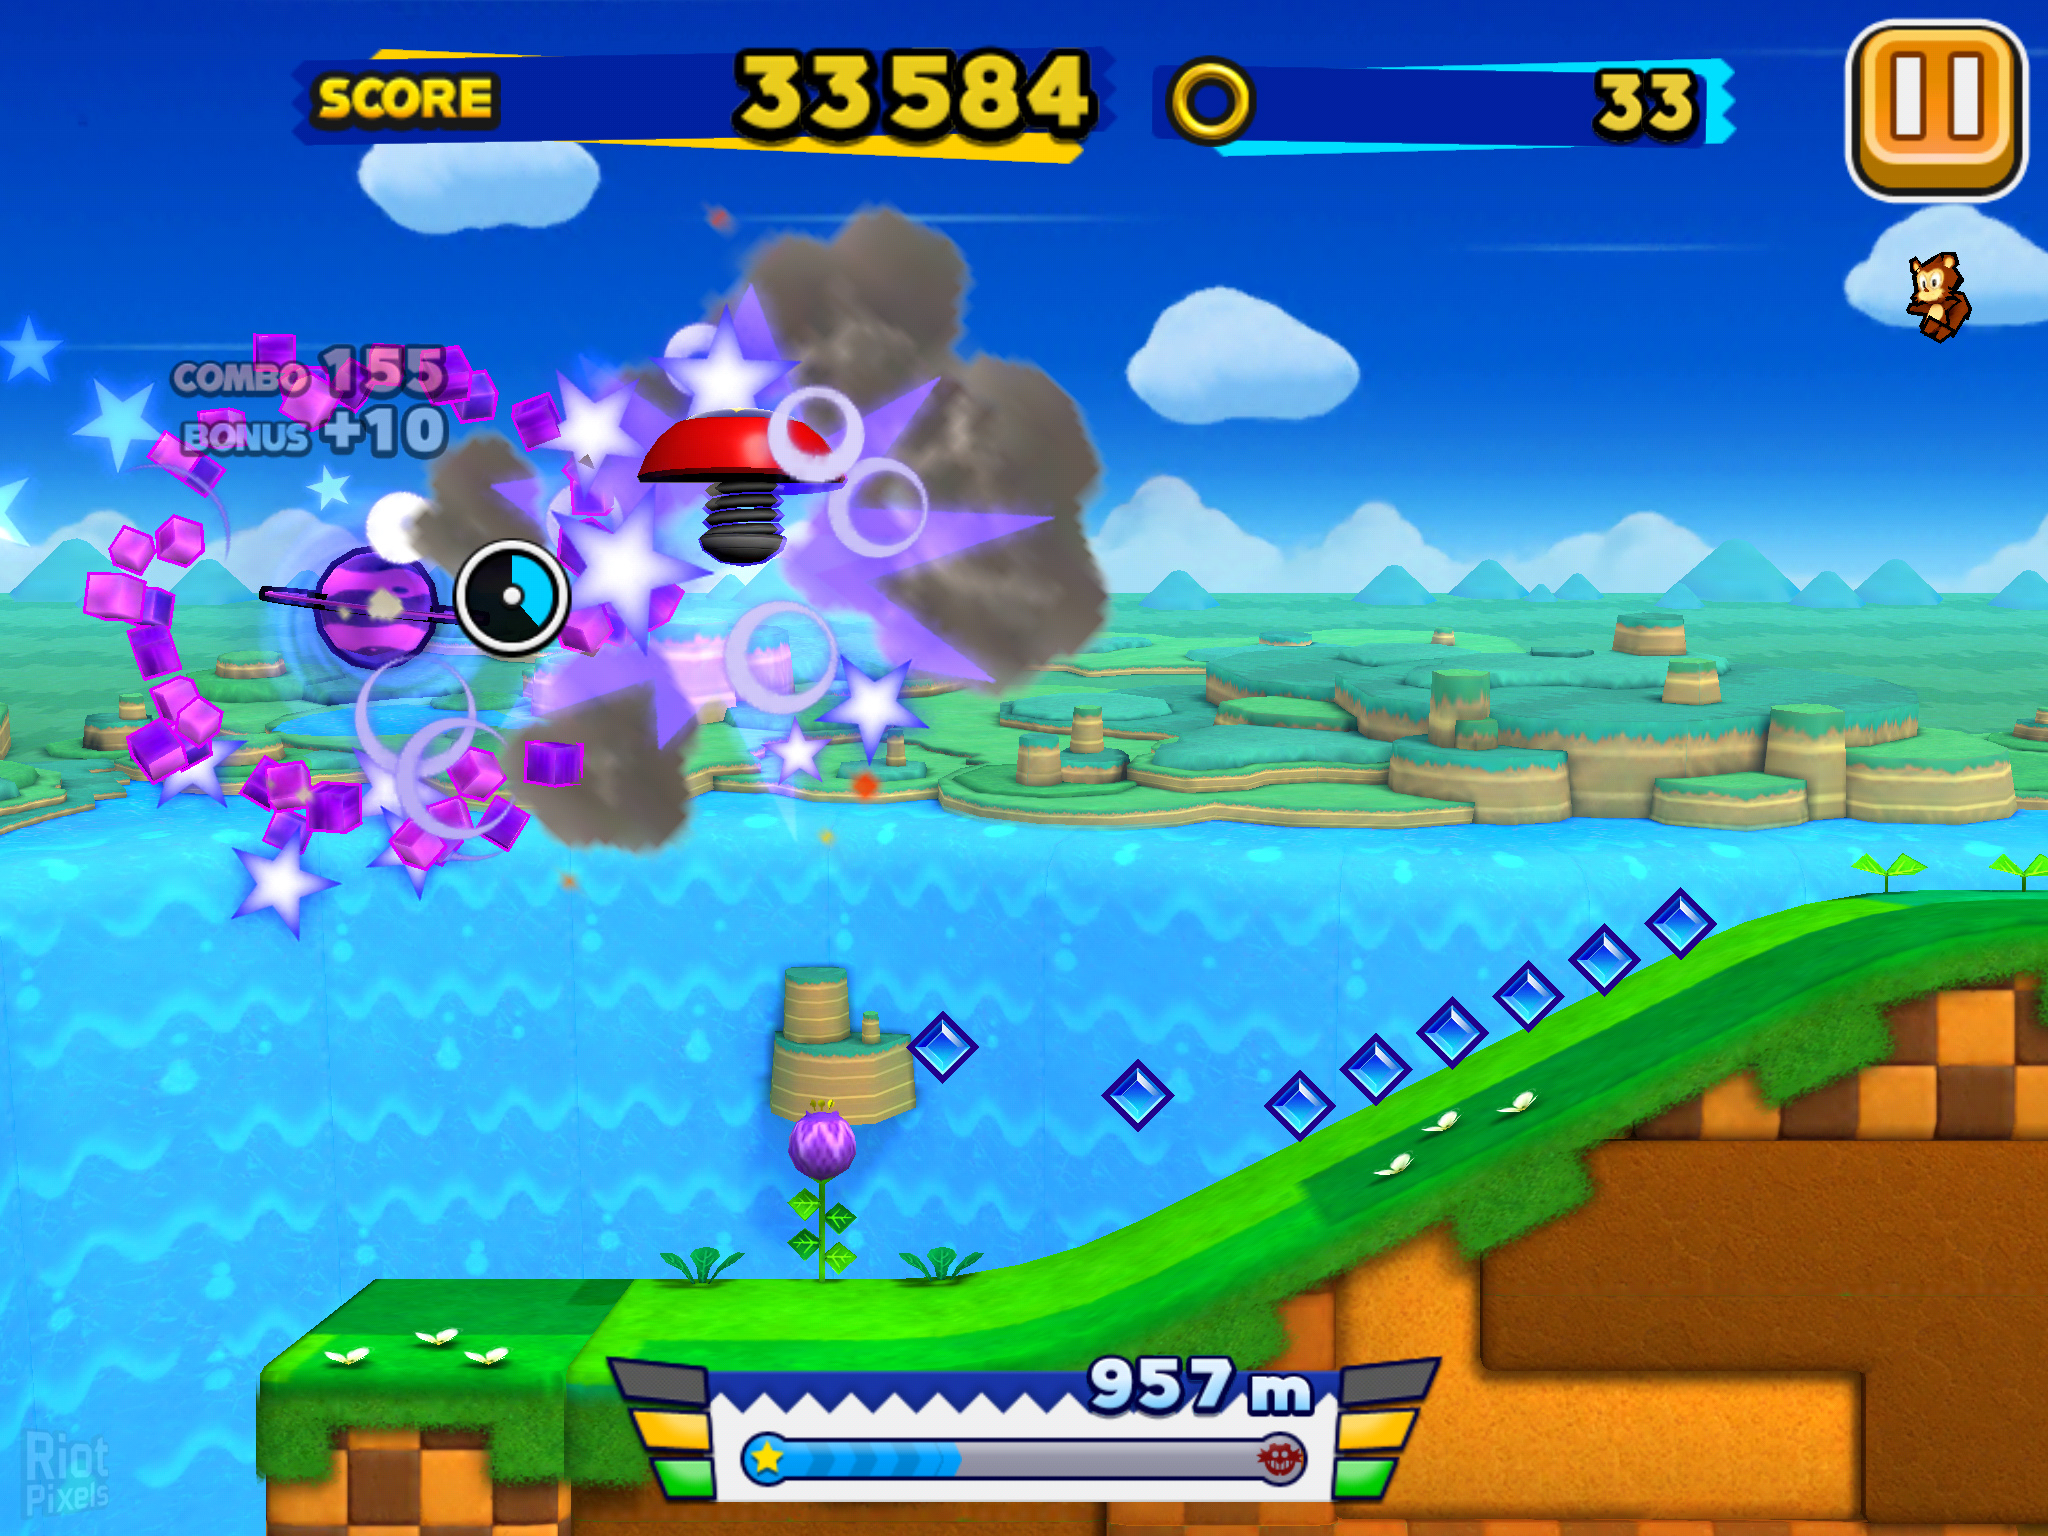 Sonic Runners Game Screenshots At Riot Pixels Images